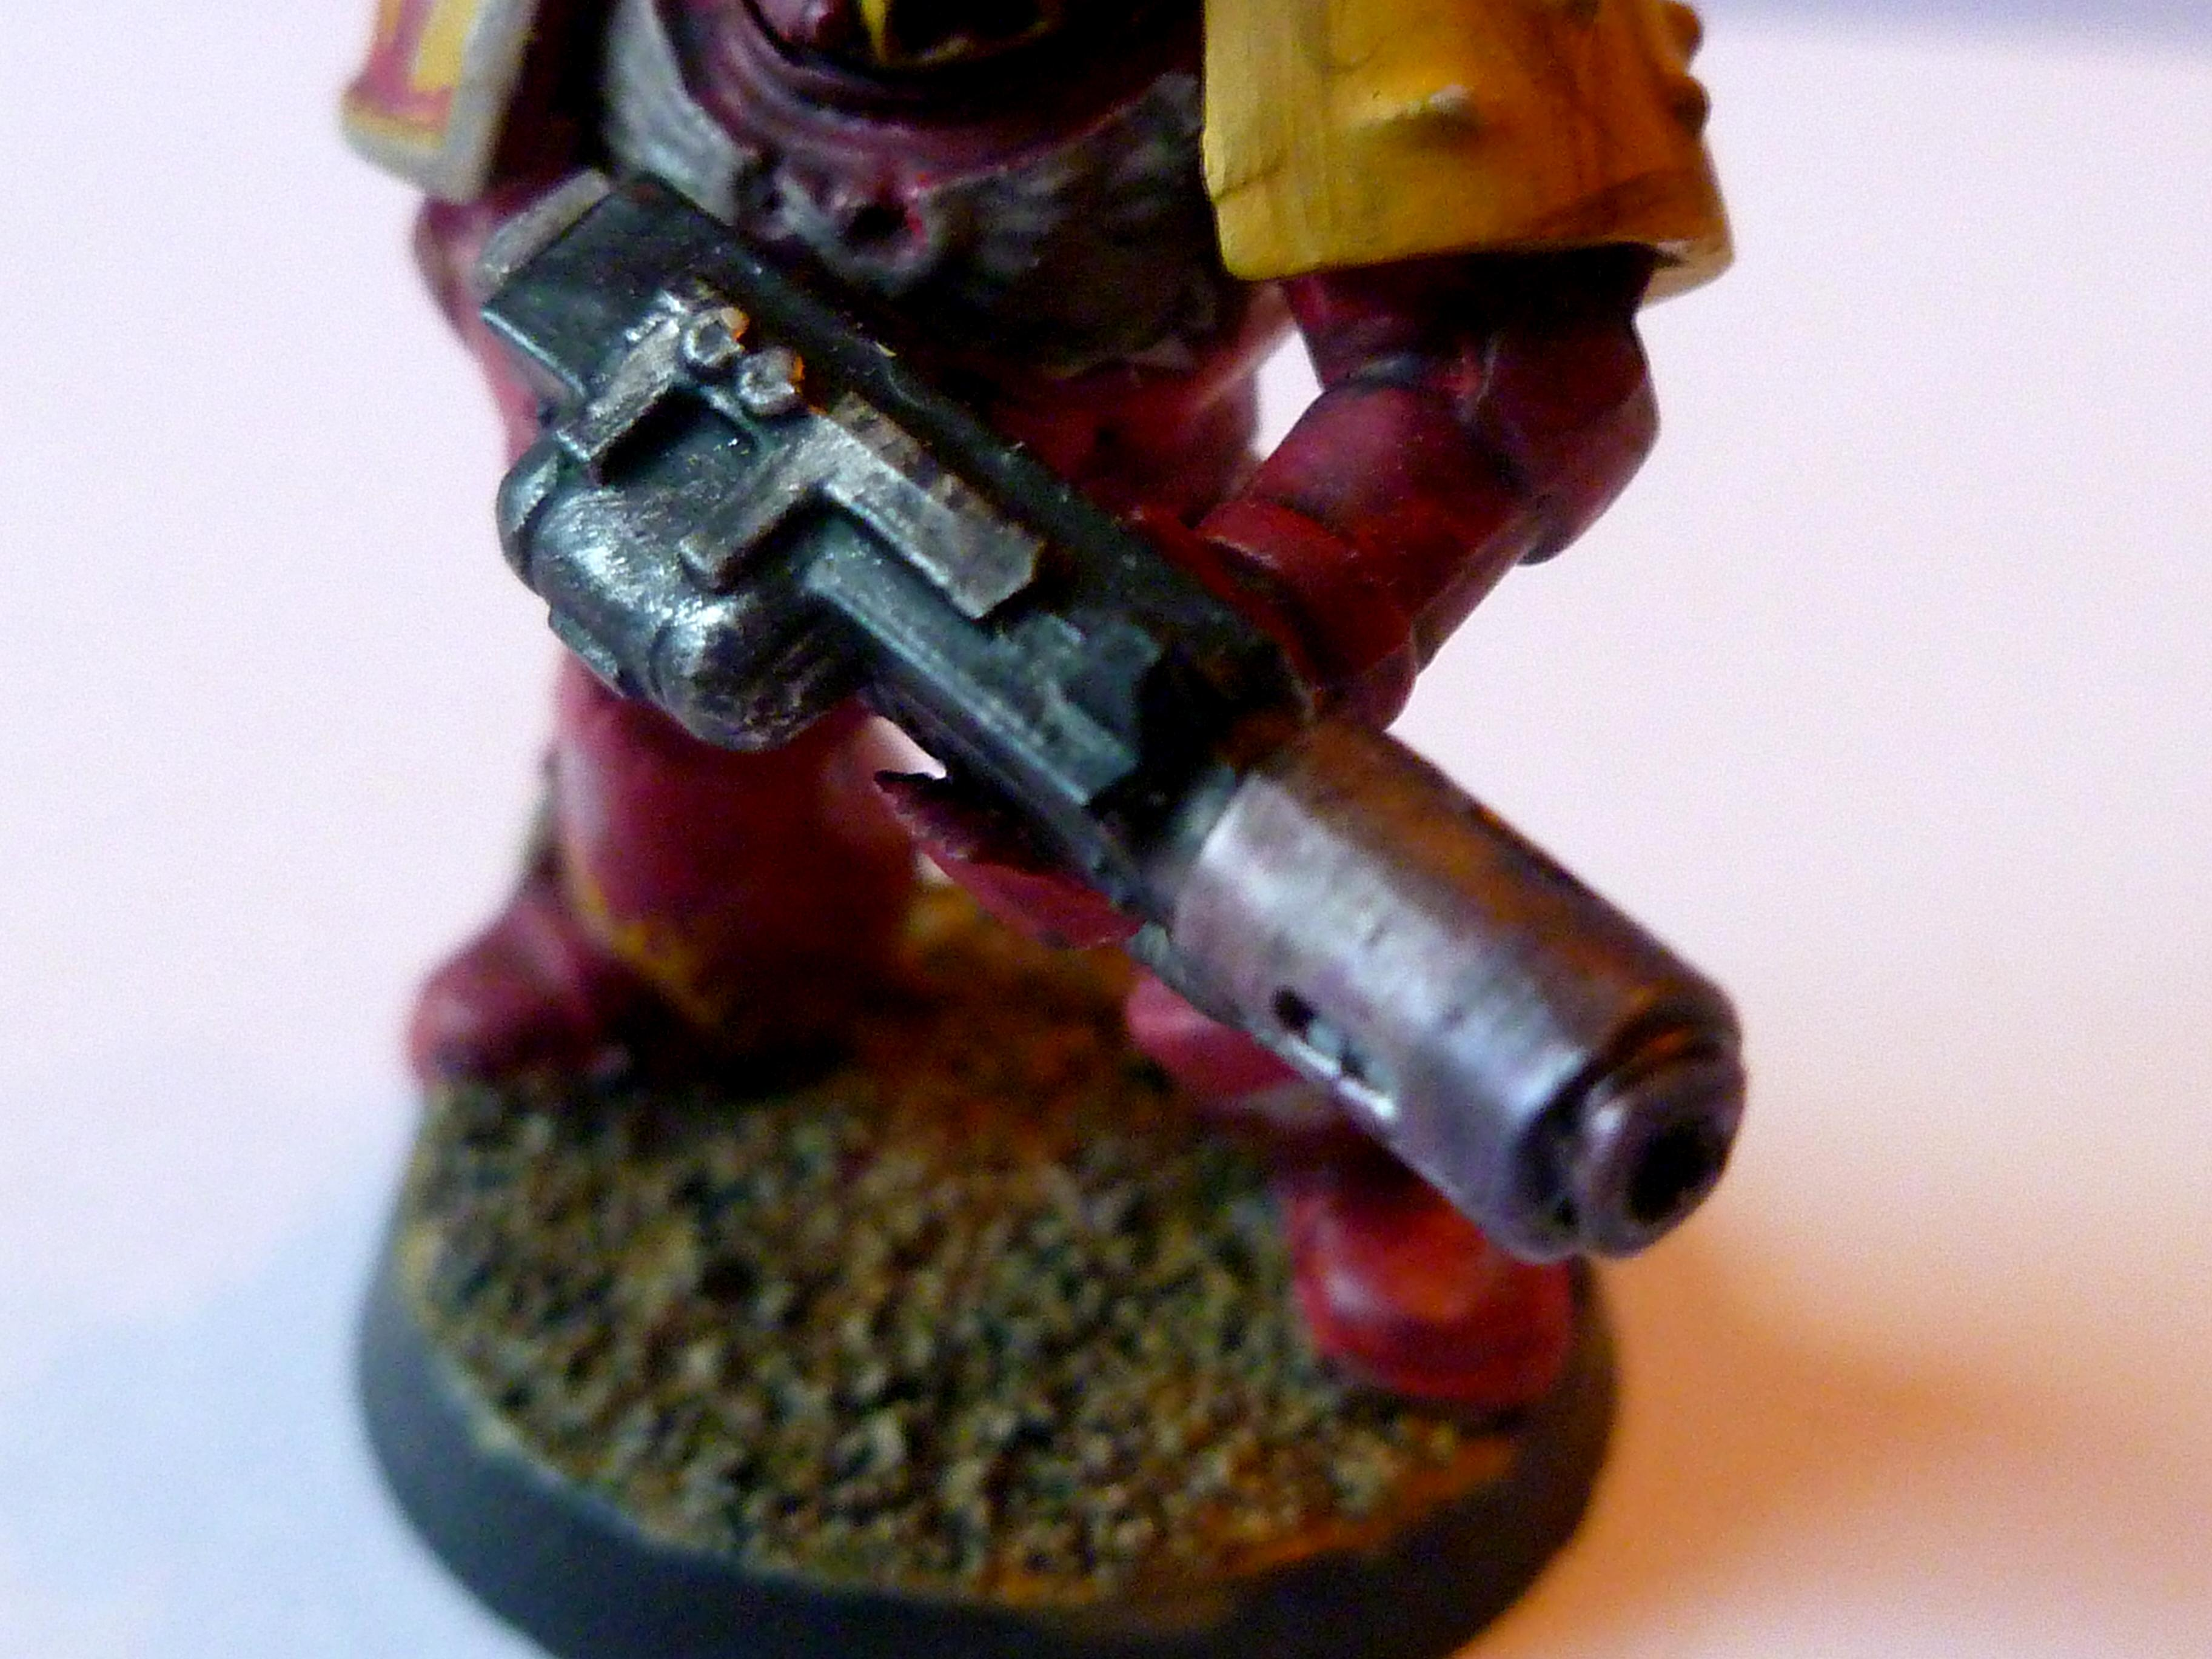 Badab, Badab War, Badab War Chapters, Chapters, Fire Hawks, Fire Hawks Chapter, Meltagun, Space Marine Chapters, Space Marines